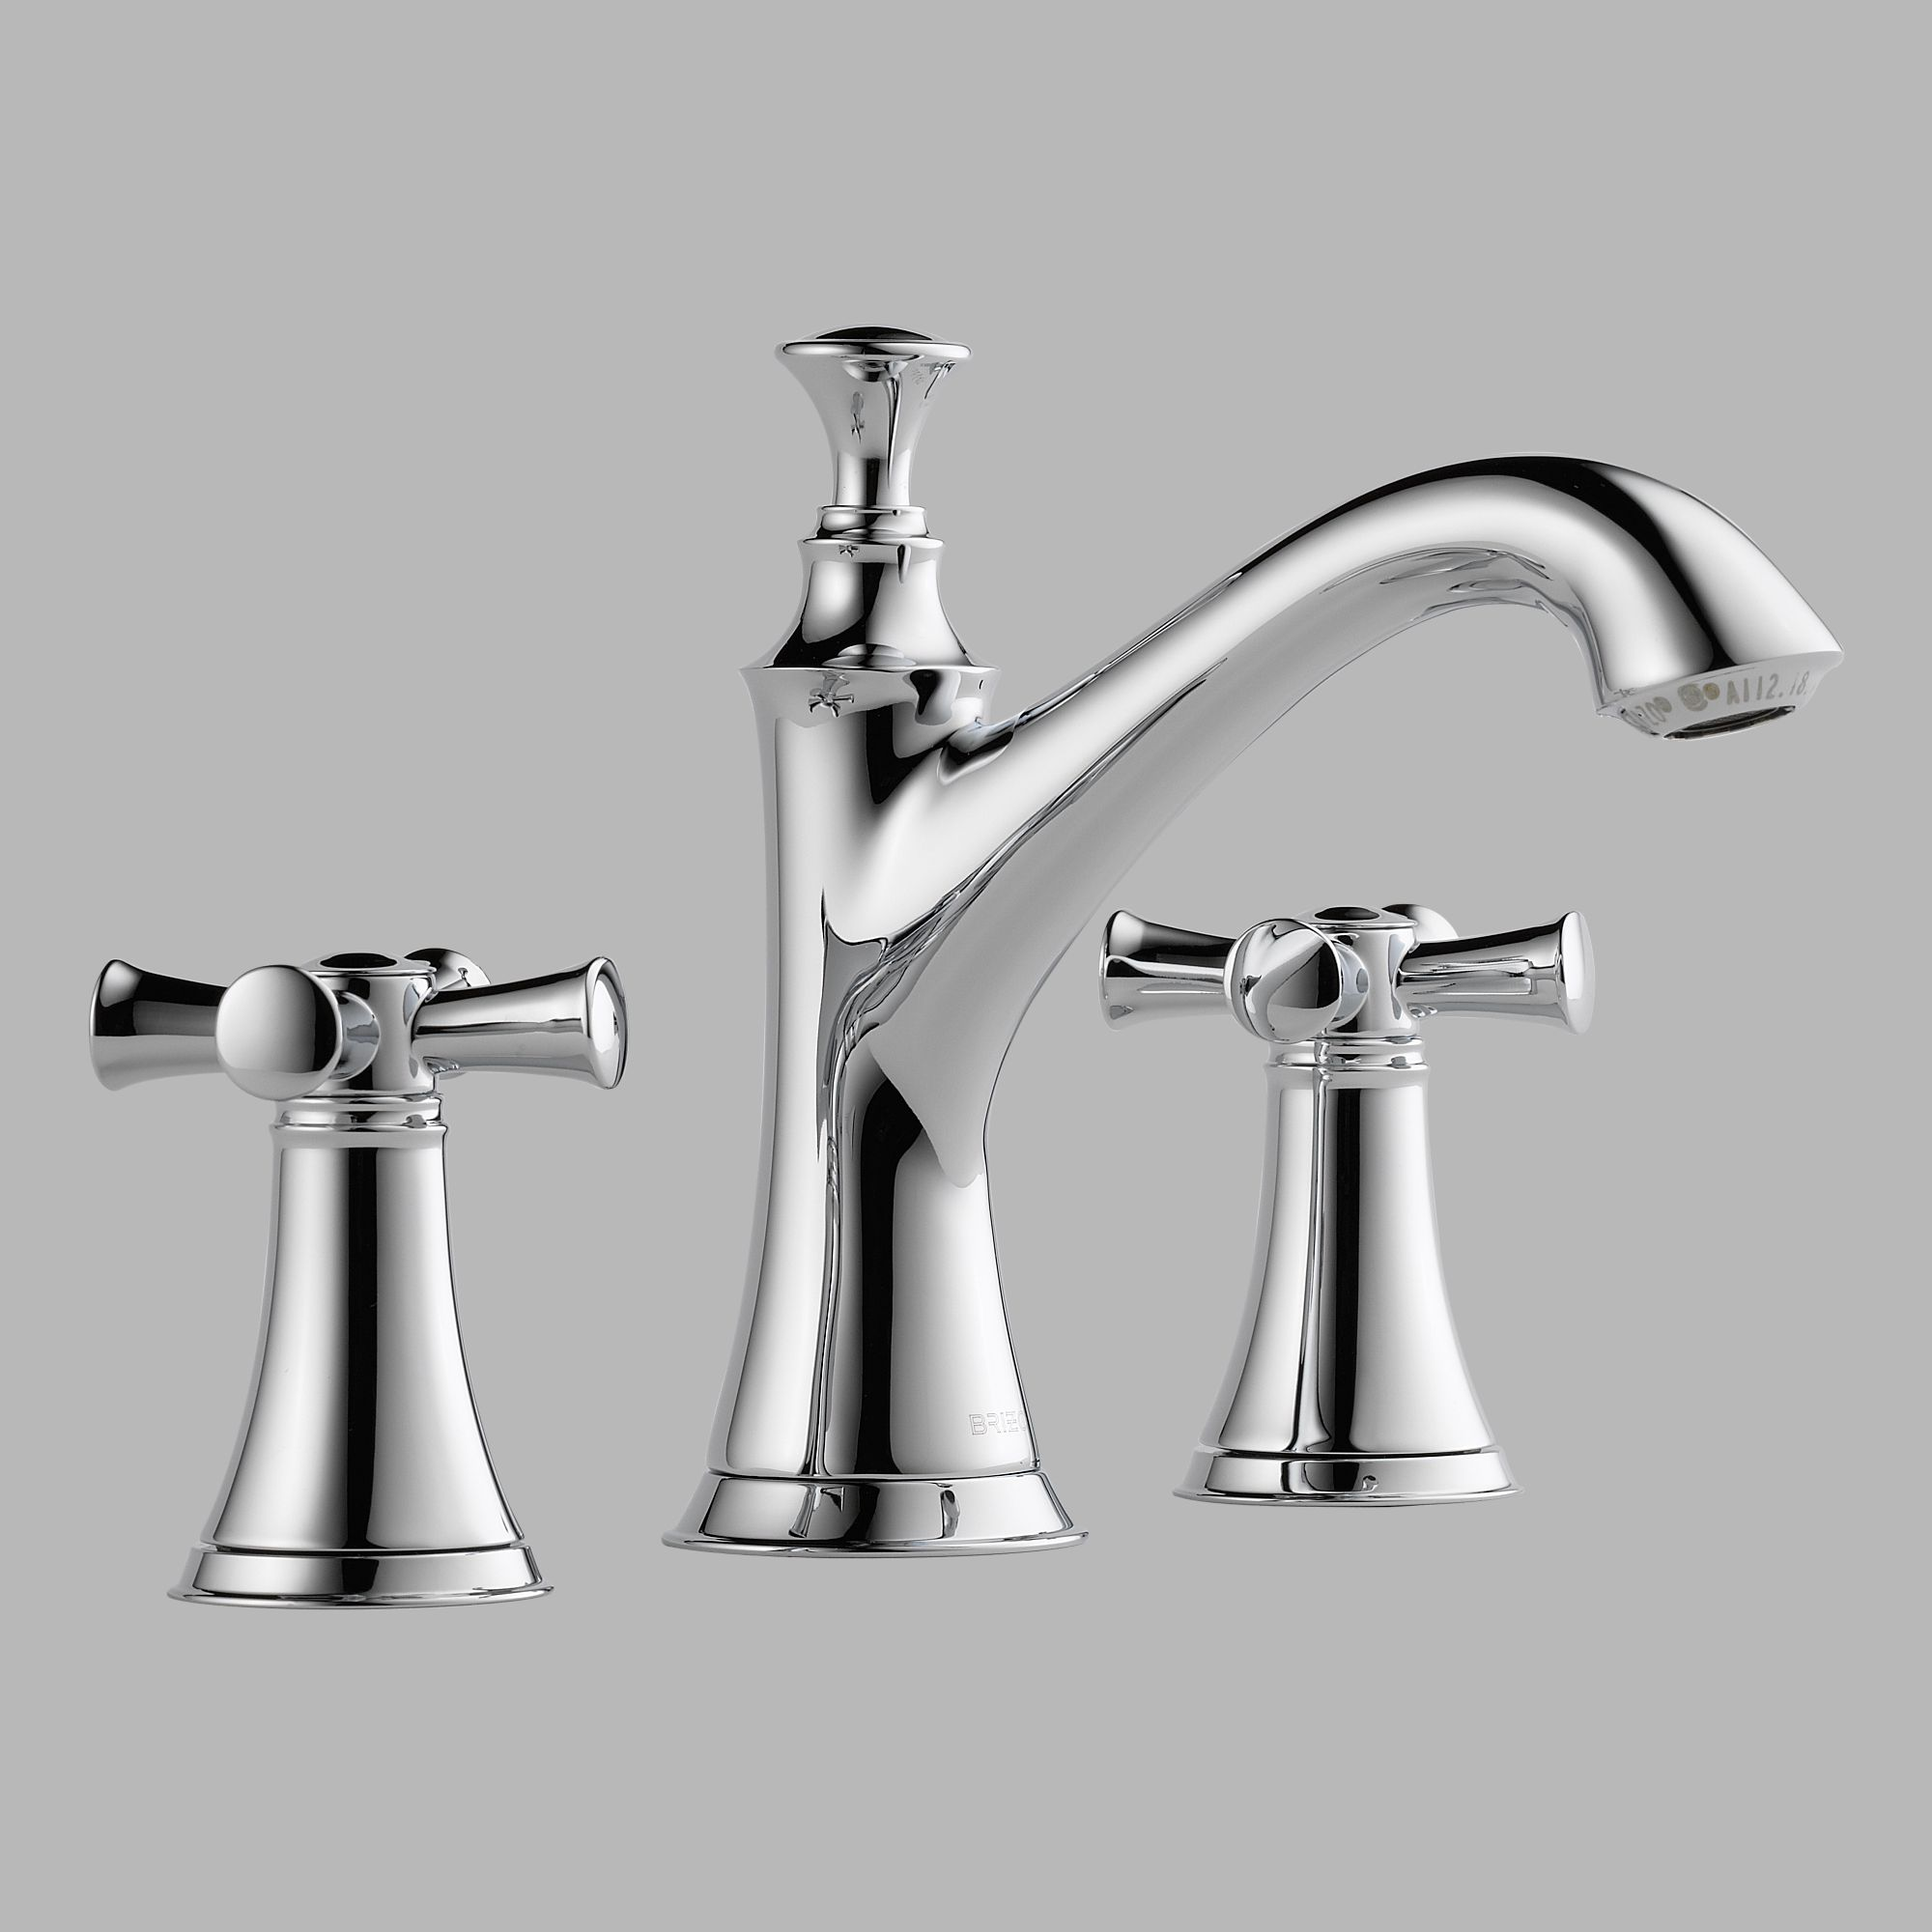 faucets sink a high two watermark end repair and handle cartridge faucet